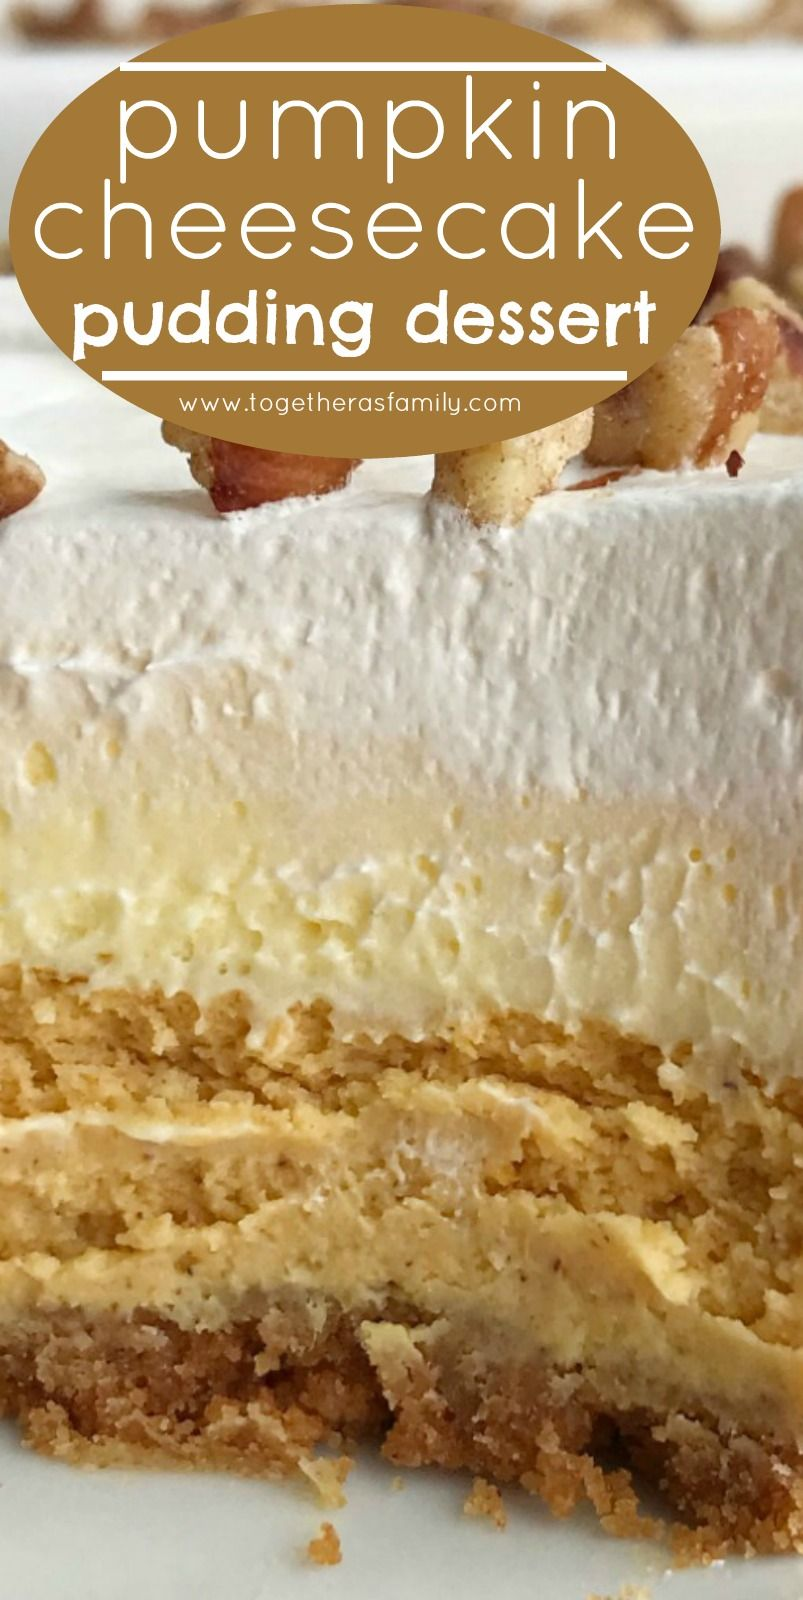 Pumpkin Cheesecake Layered Pudding Dessert | Together as Family